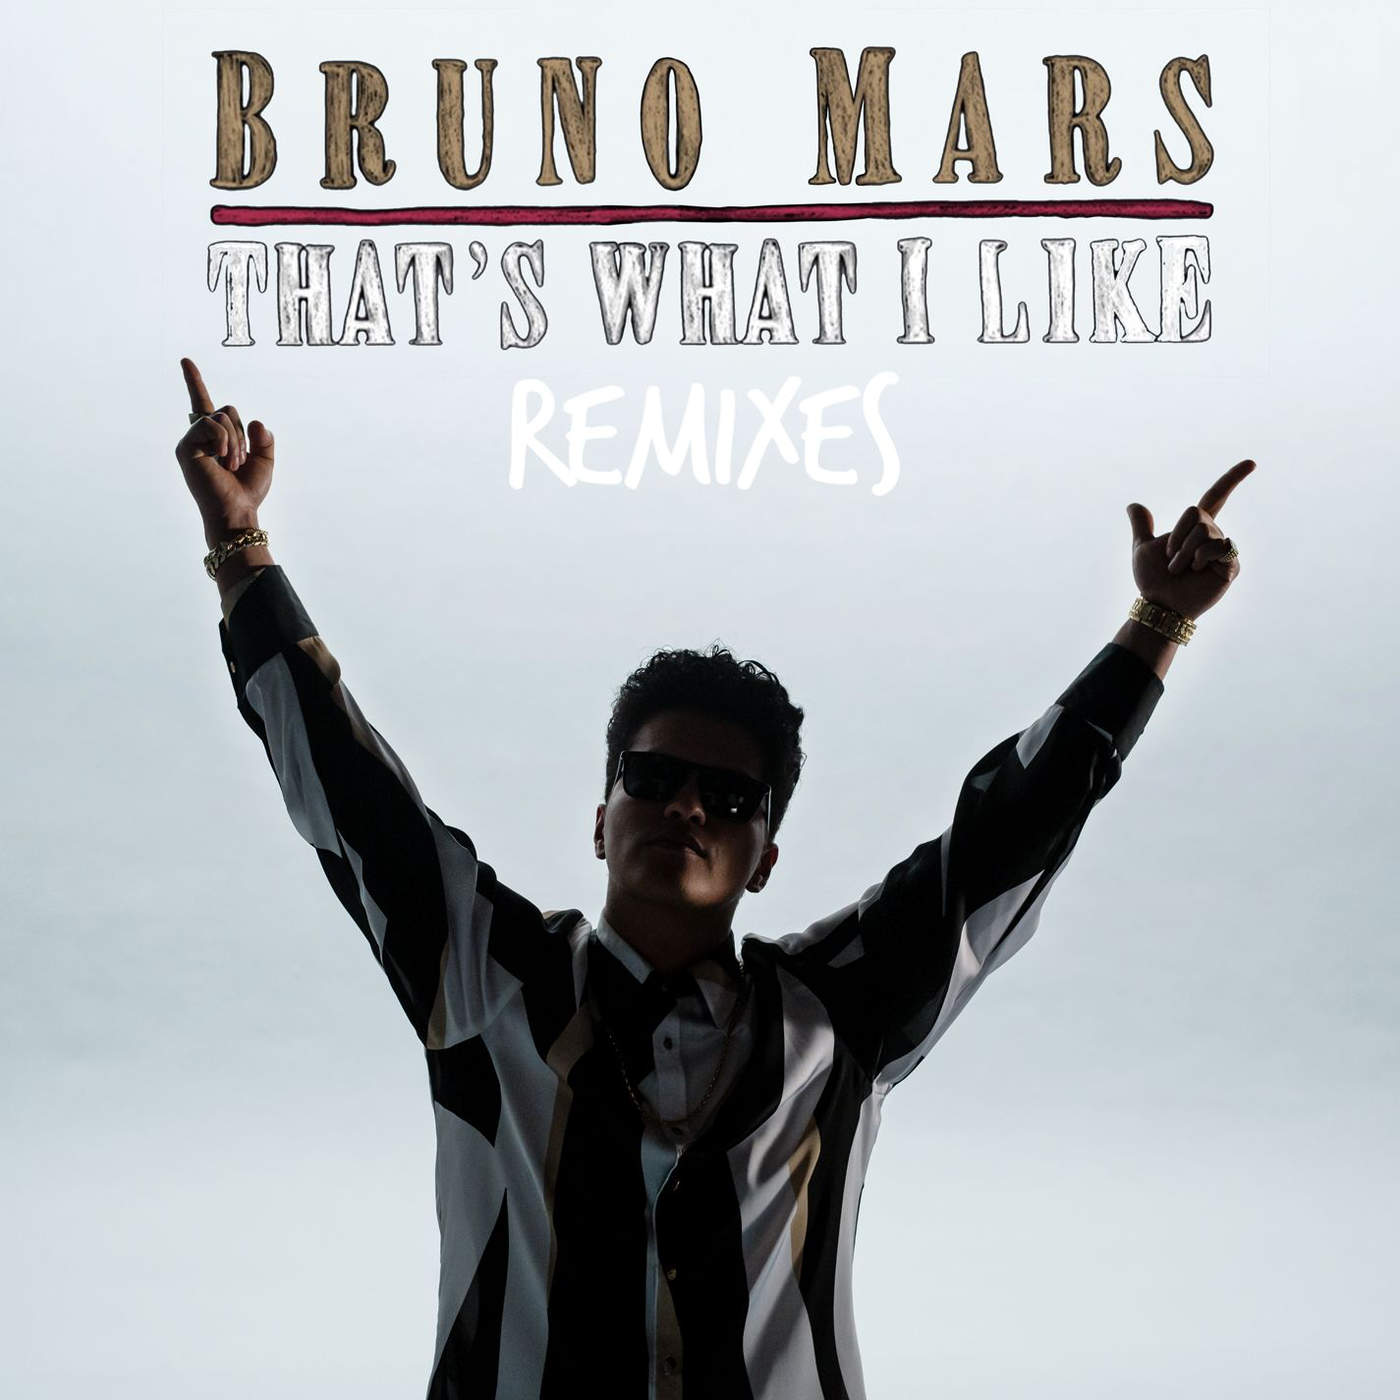 Bruno Mars - That's What I Like (feat. Gucci Mane) [Remix] - Single Cover